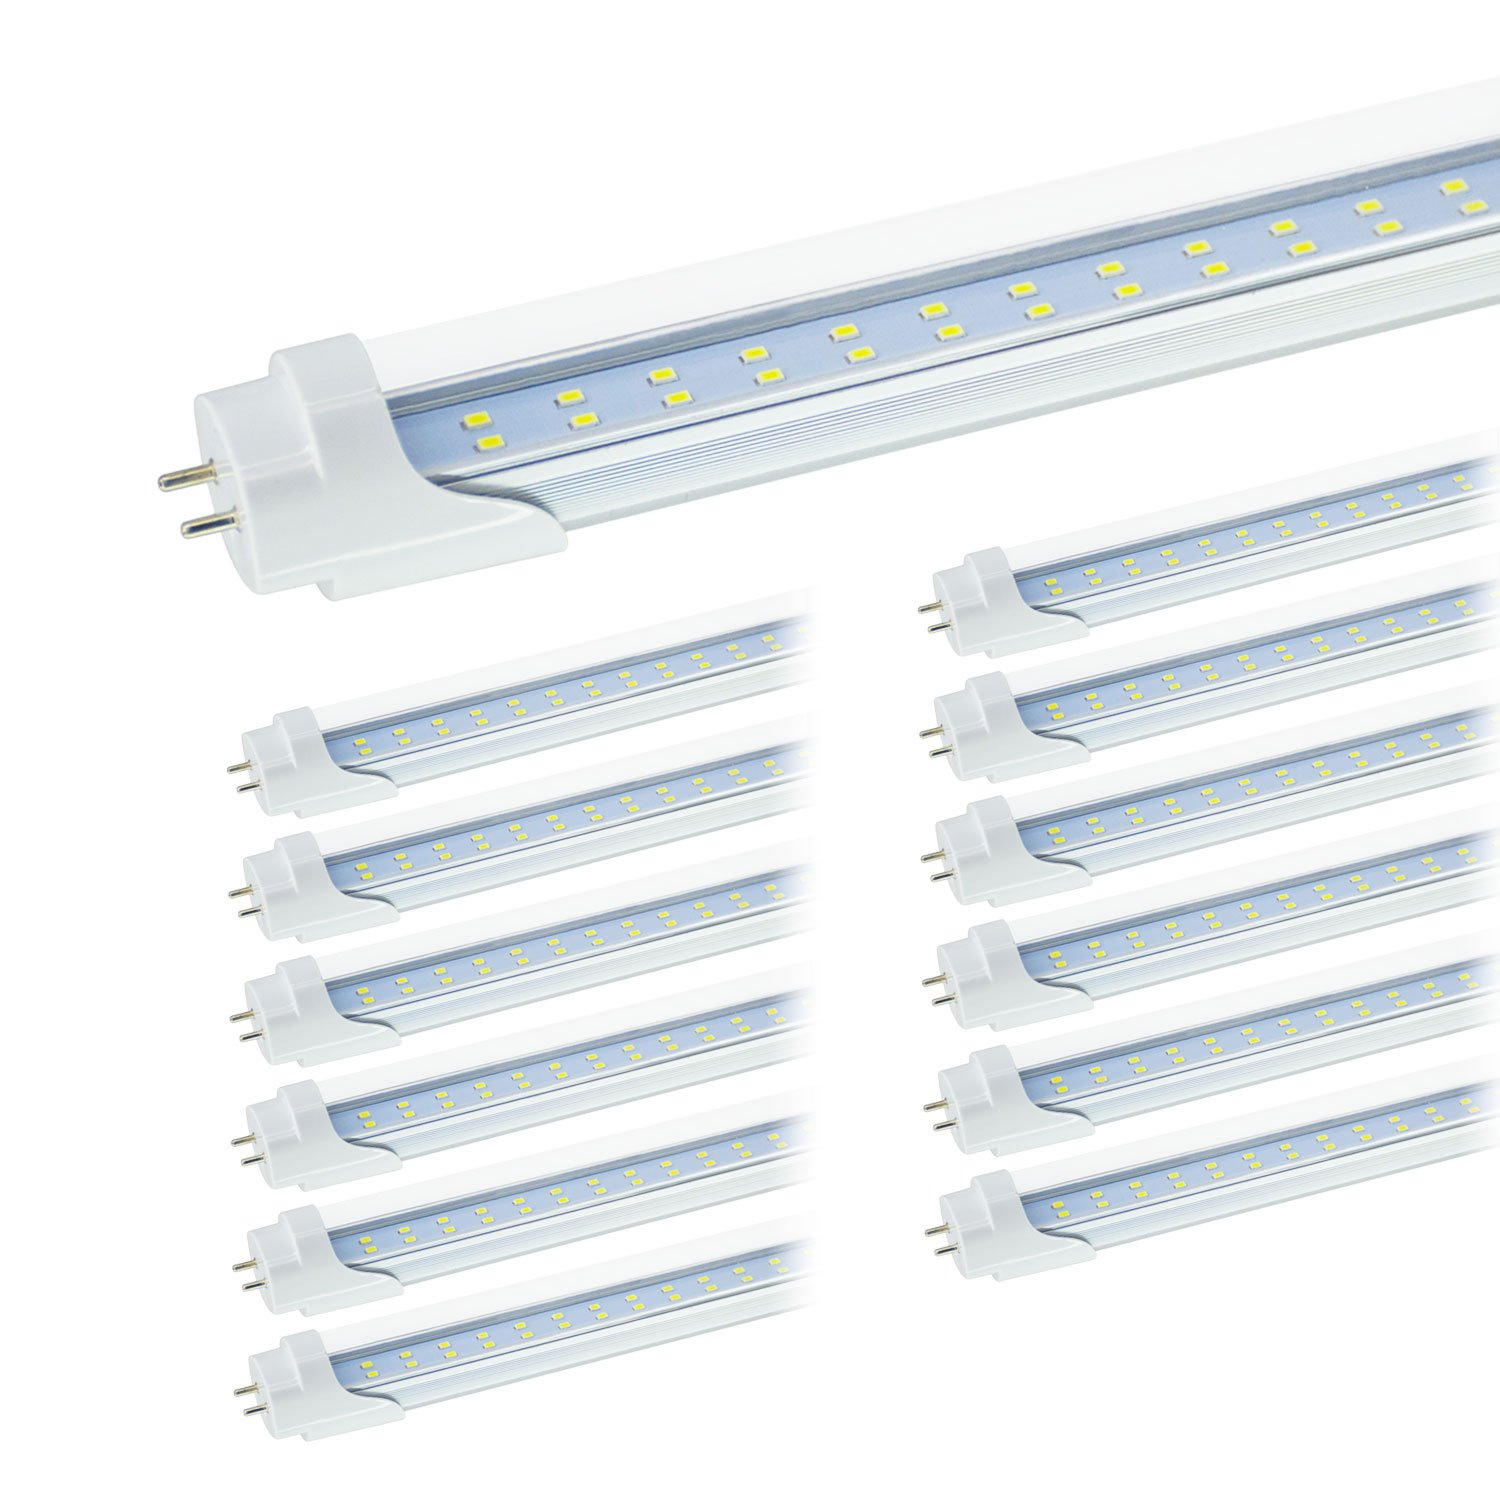 JESLED T8 4FT LED Tube Light, 5000k Daylight, 24W 3000LM, Clear Cover, 4 Foot 48'' T12 LED Bulbs Replacement for Garage Warehouse Shops Fluorescent Fixture, Dual-end Powered, Ballast Bypass (12-Pack) by JESLED